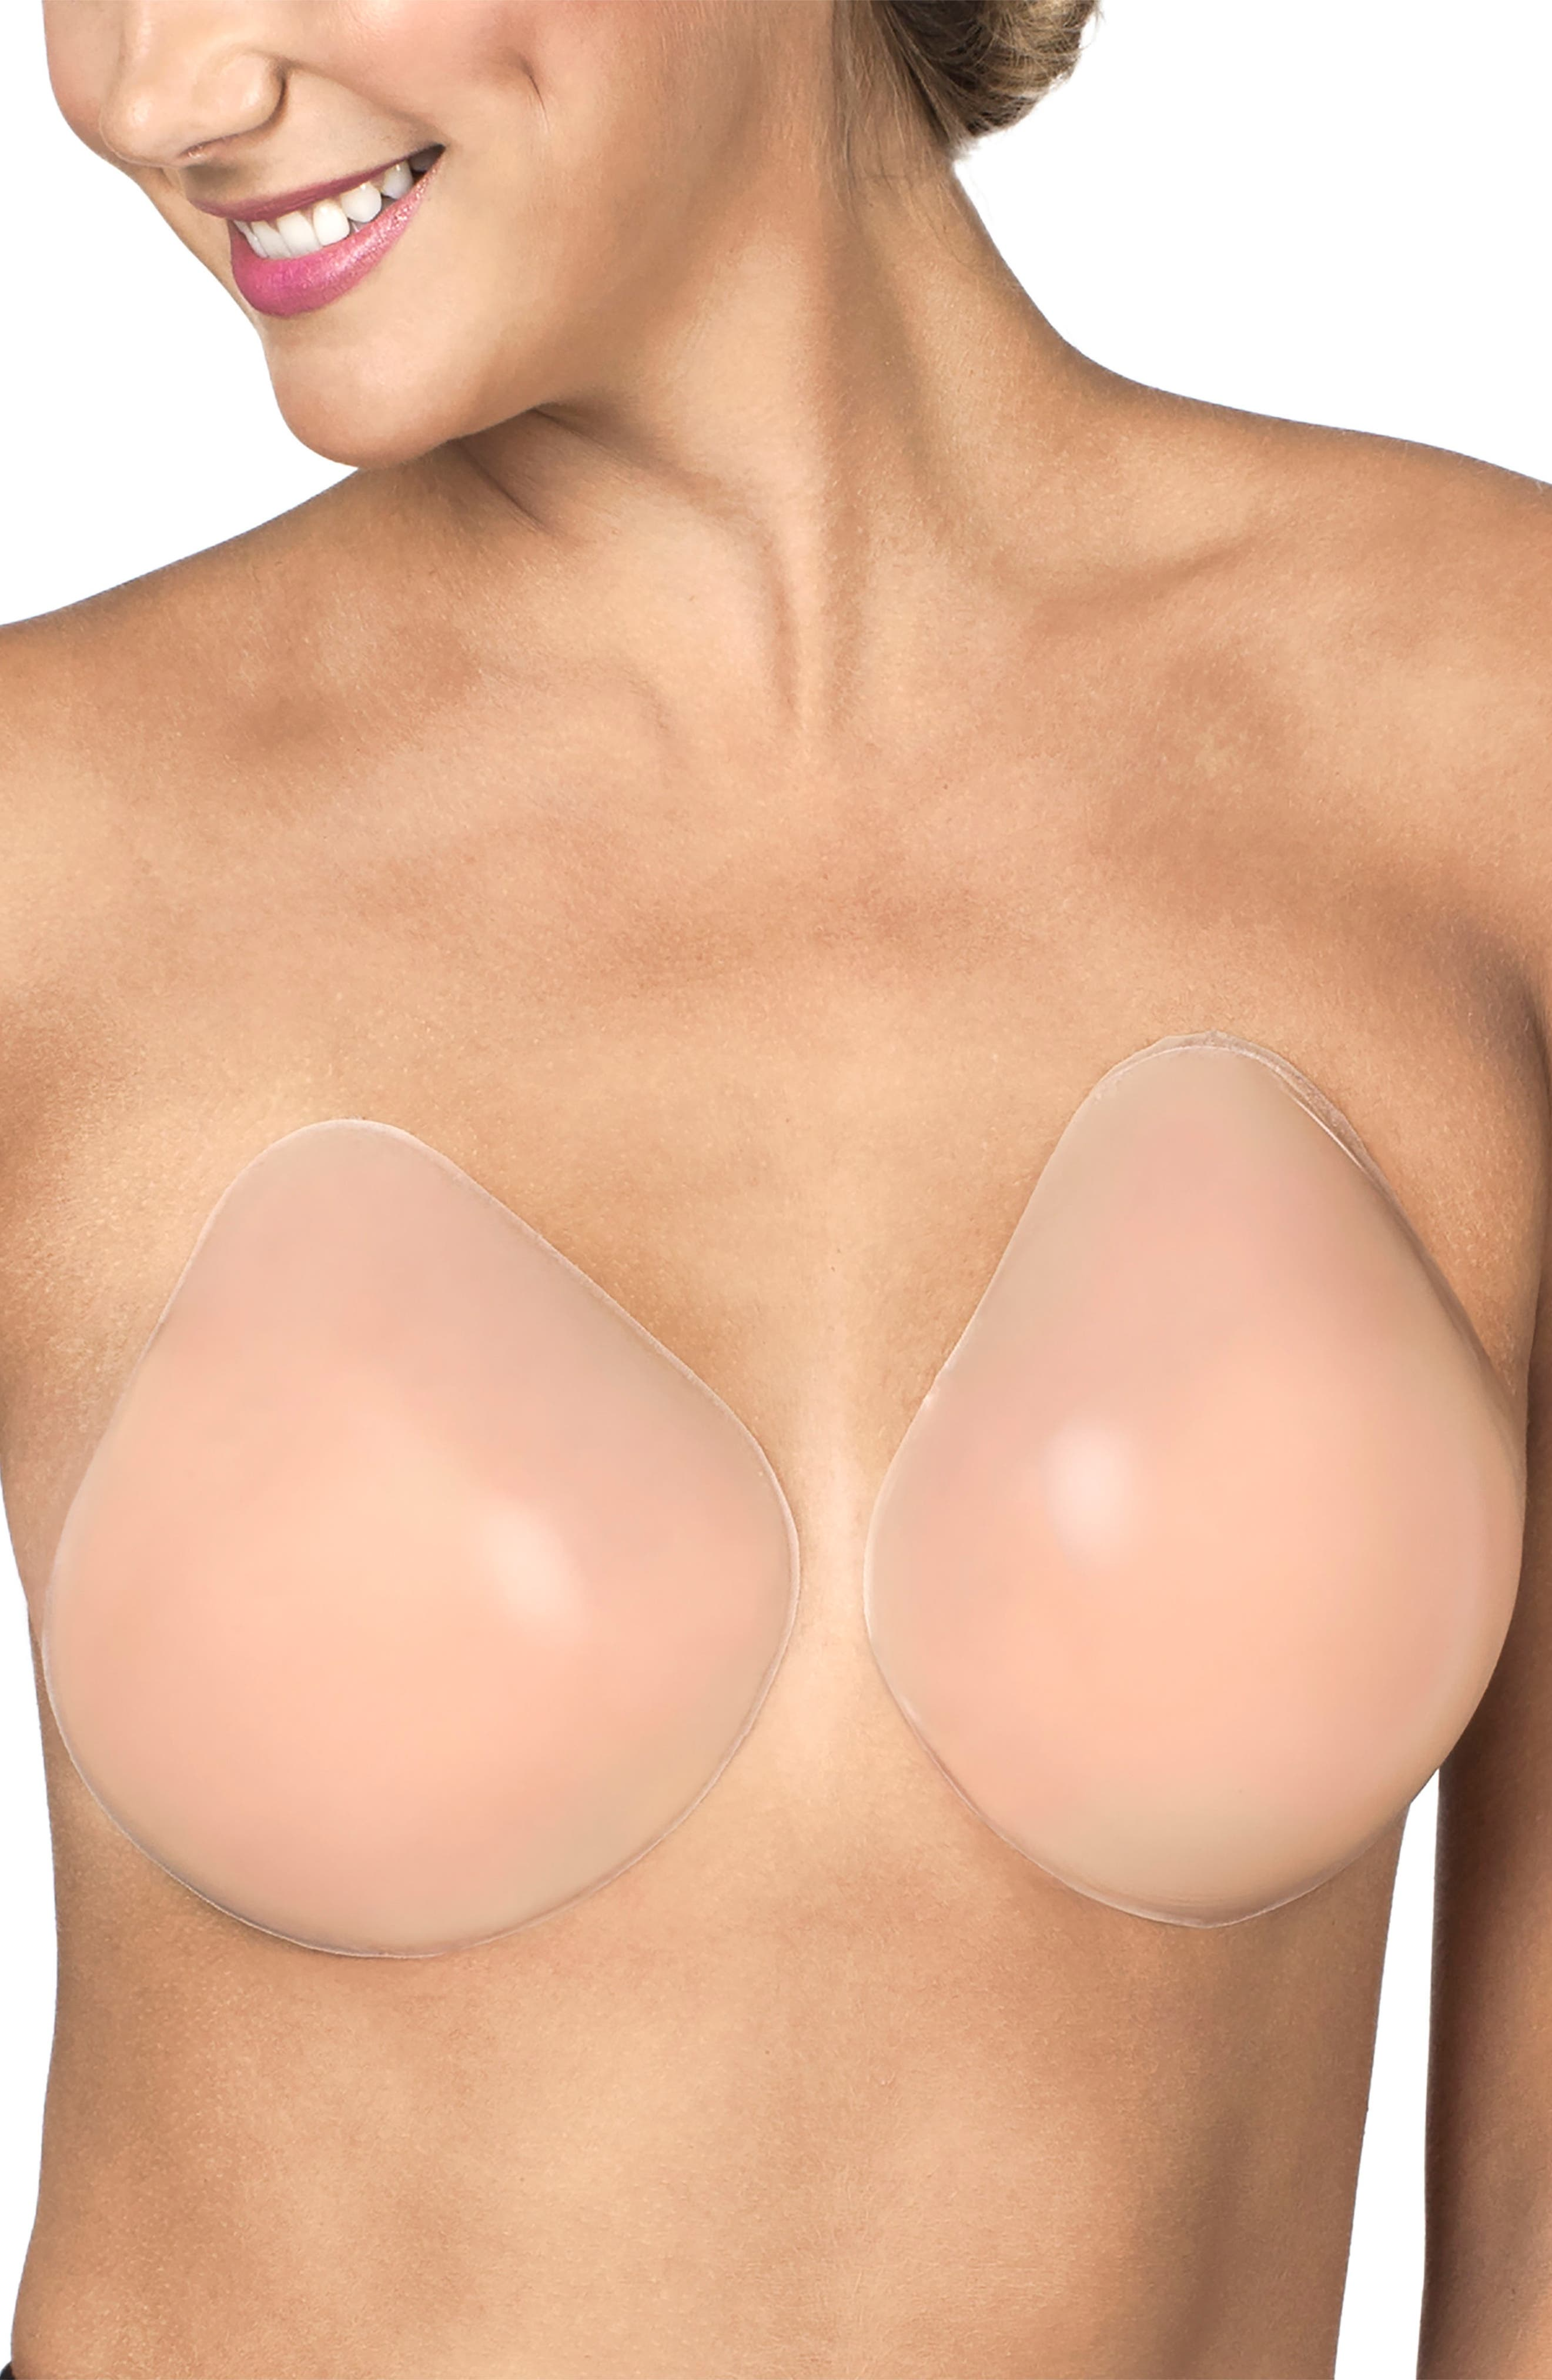 Lift It Up Adhesive Silicone Bra,                         Main,                         color, Nude